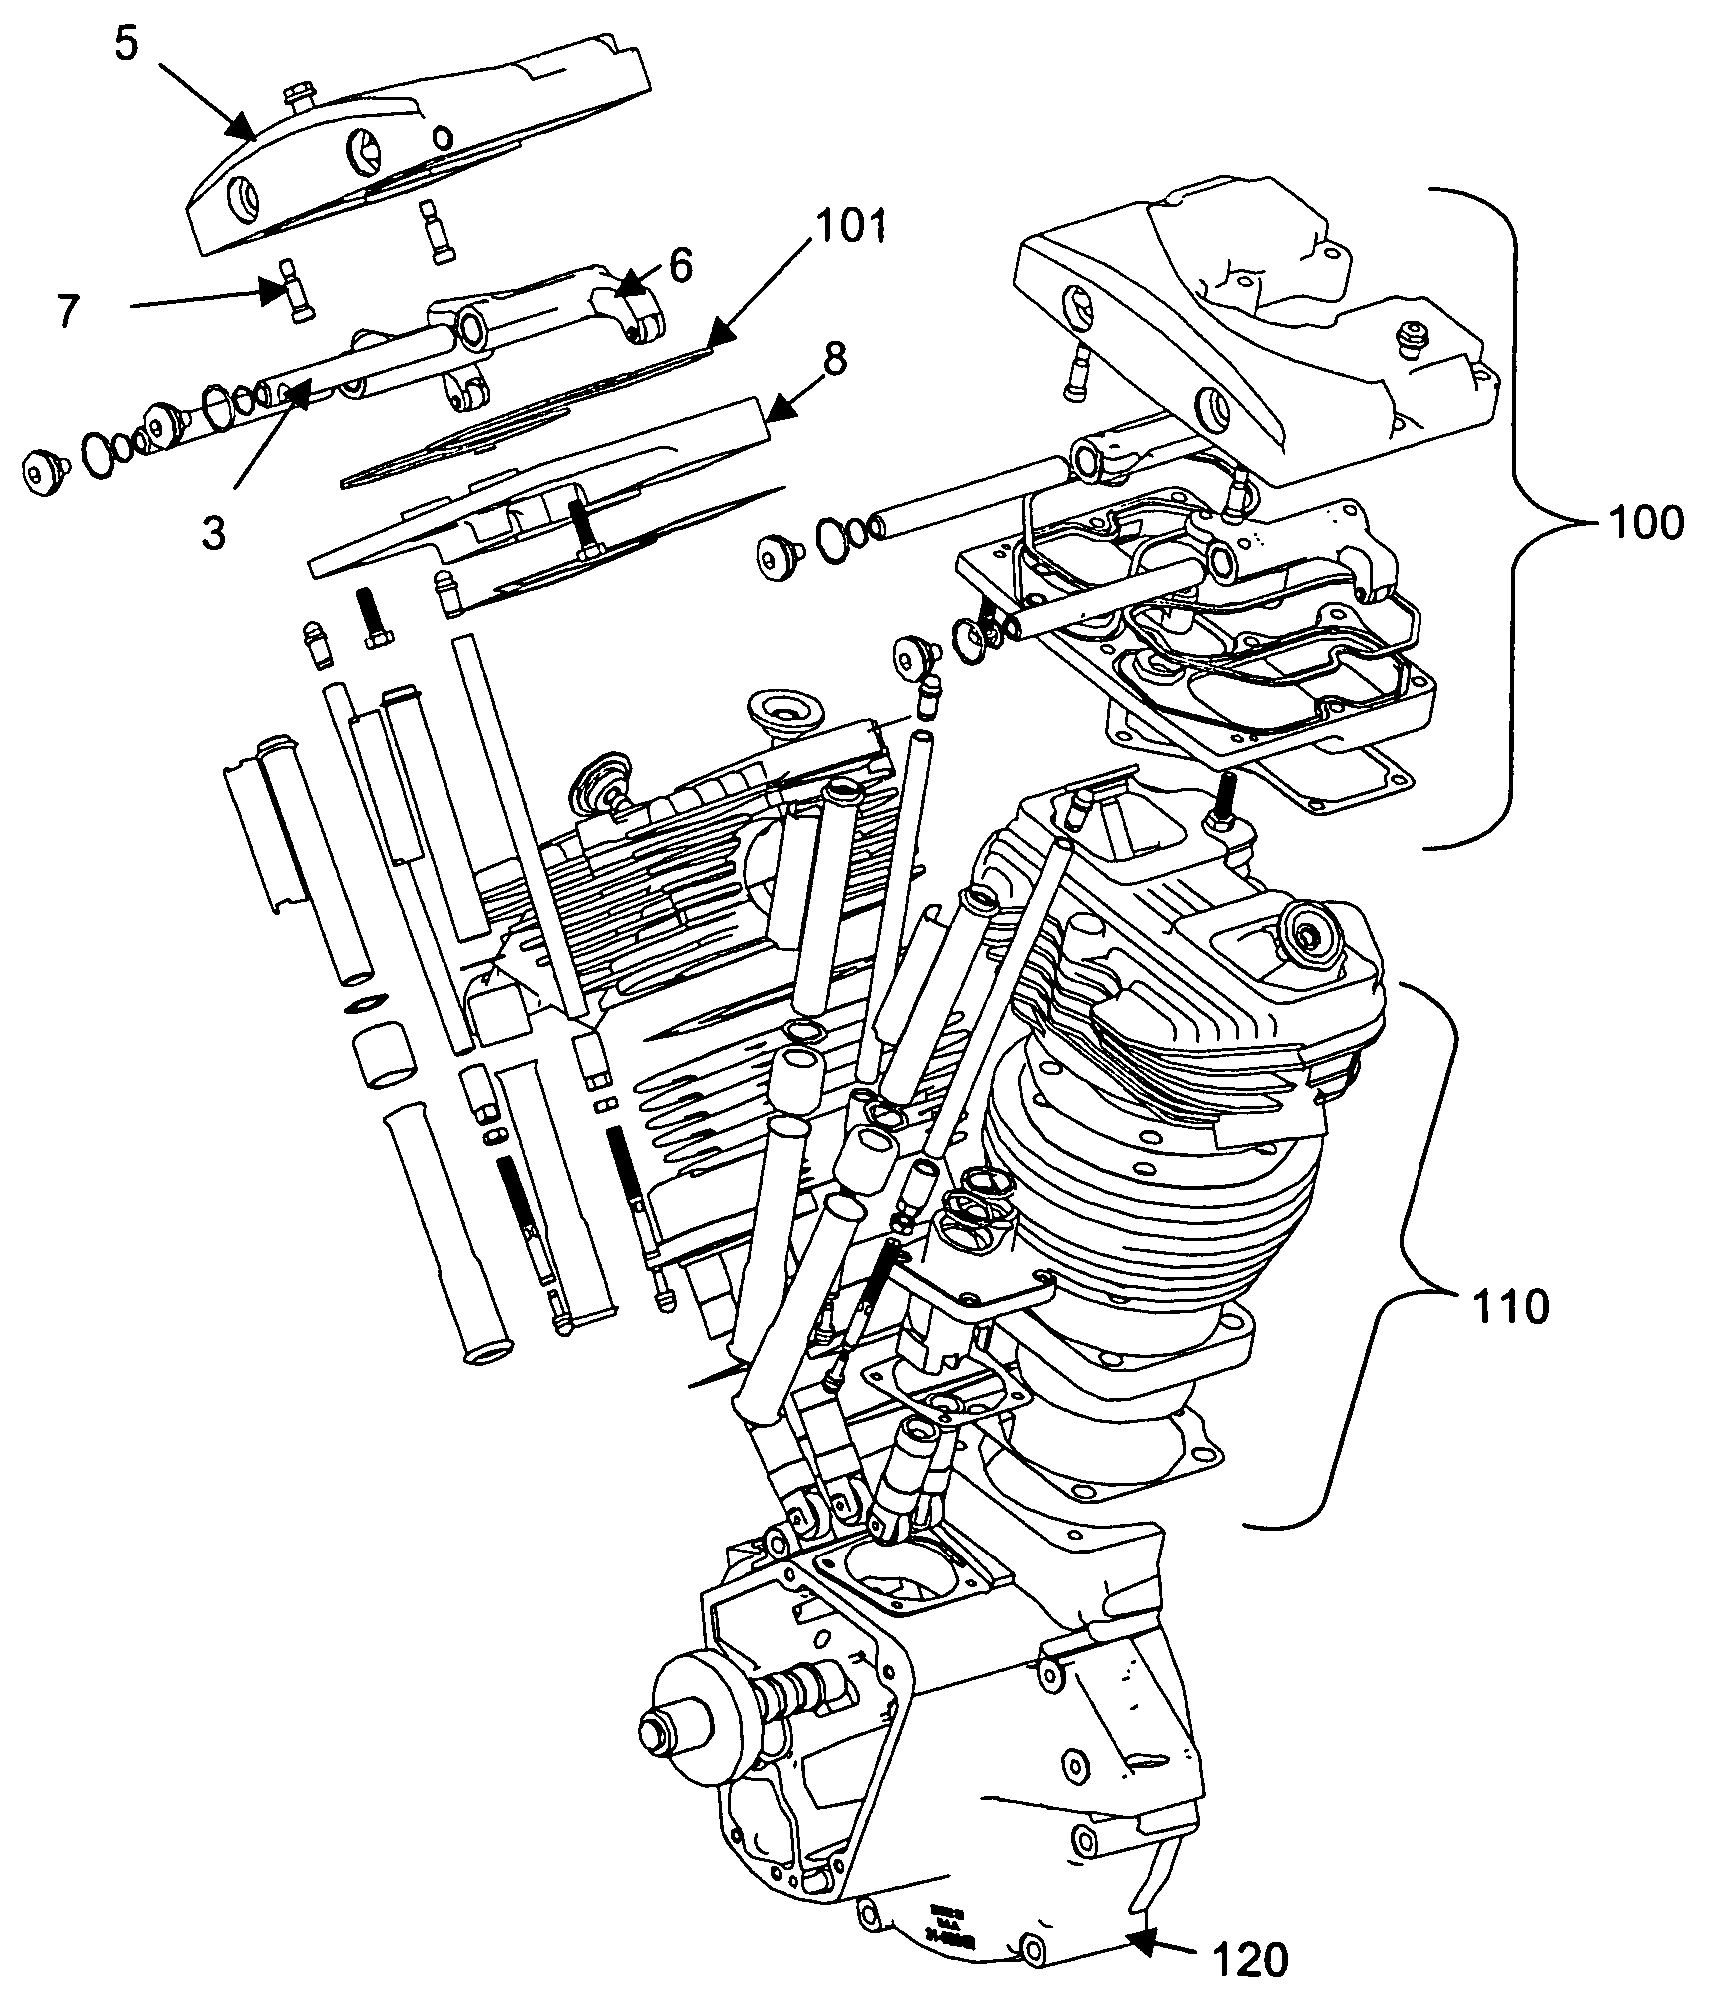 hight resolution of harley davidson engine exploded view